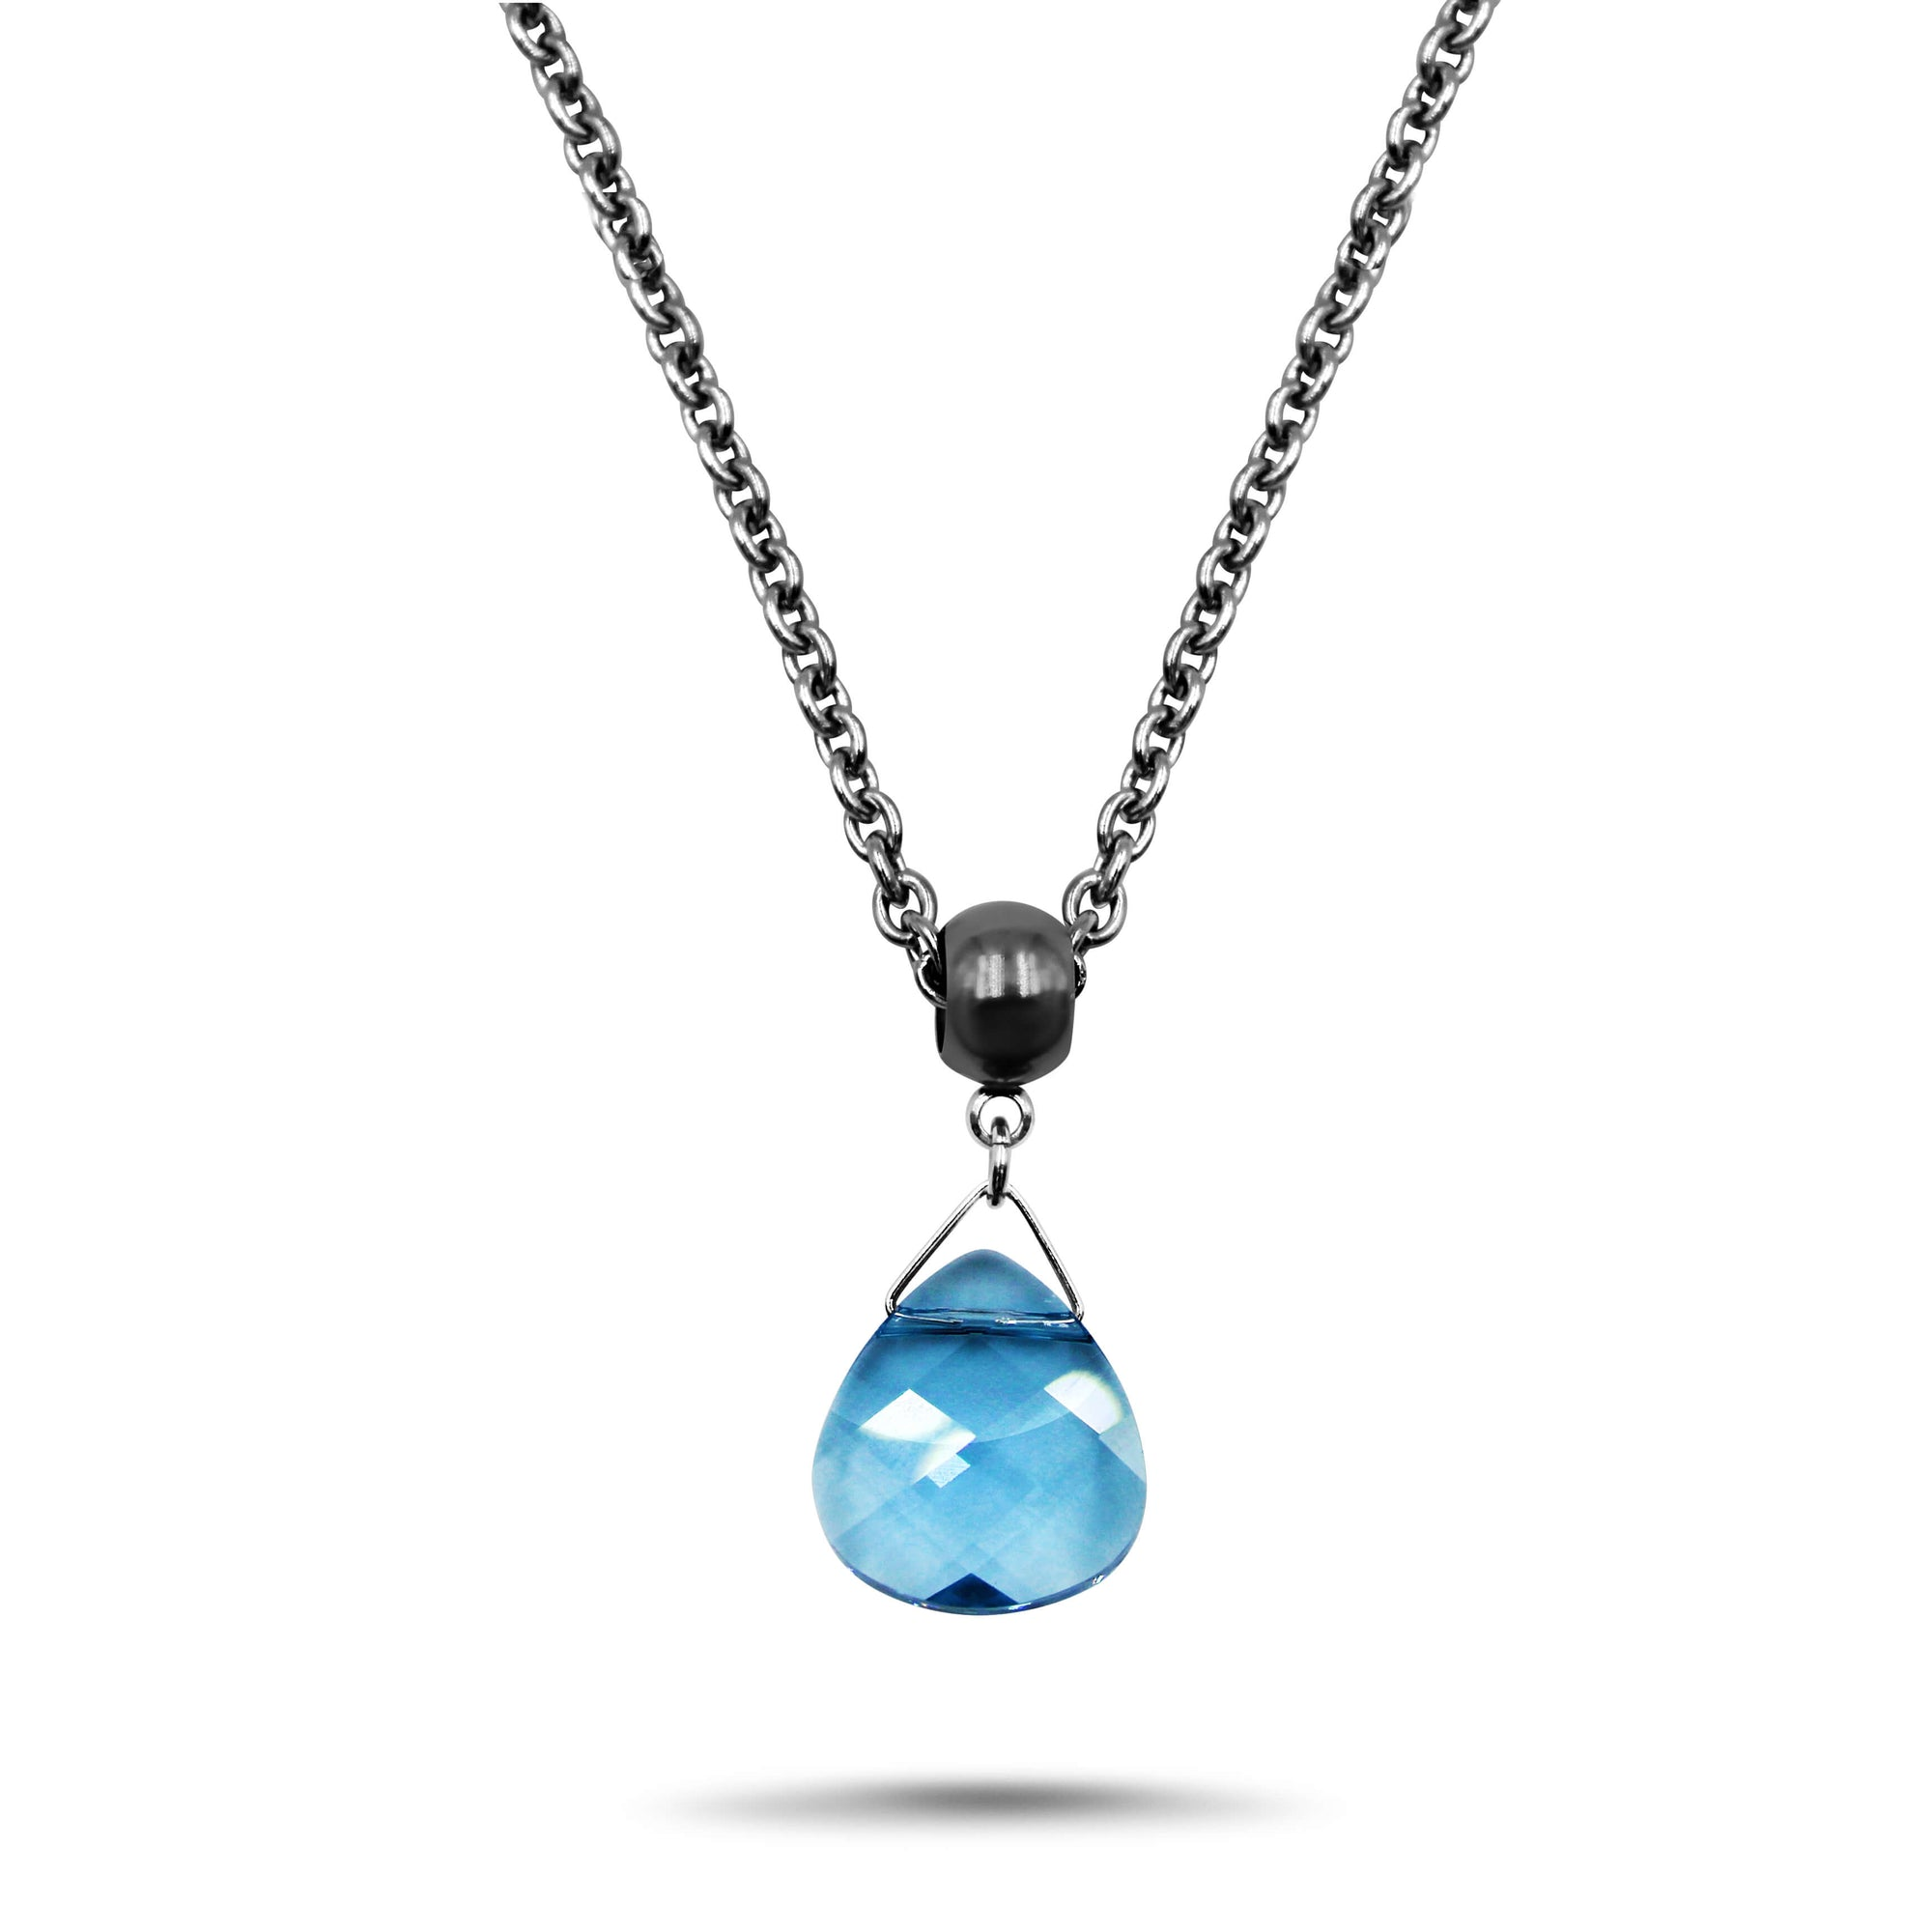 Aquamarine Swarovski Crystal Necklace - Creative Jewelry by Marcia - Asymmetrical Jewelry - Timeless Jewelry